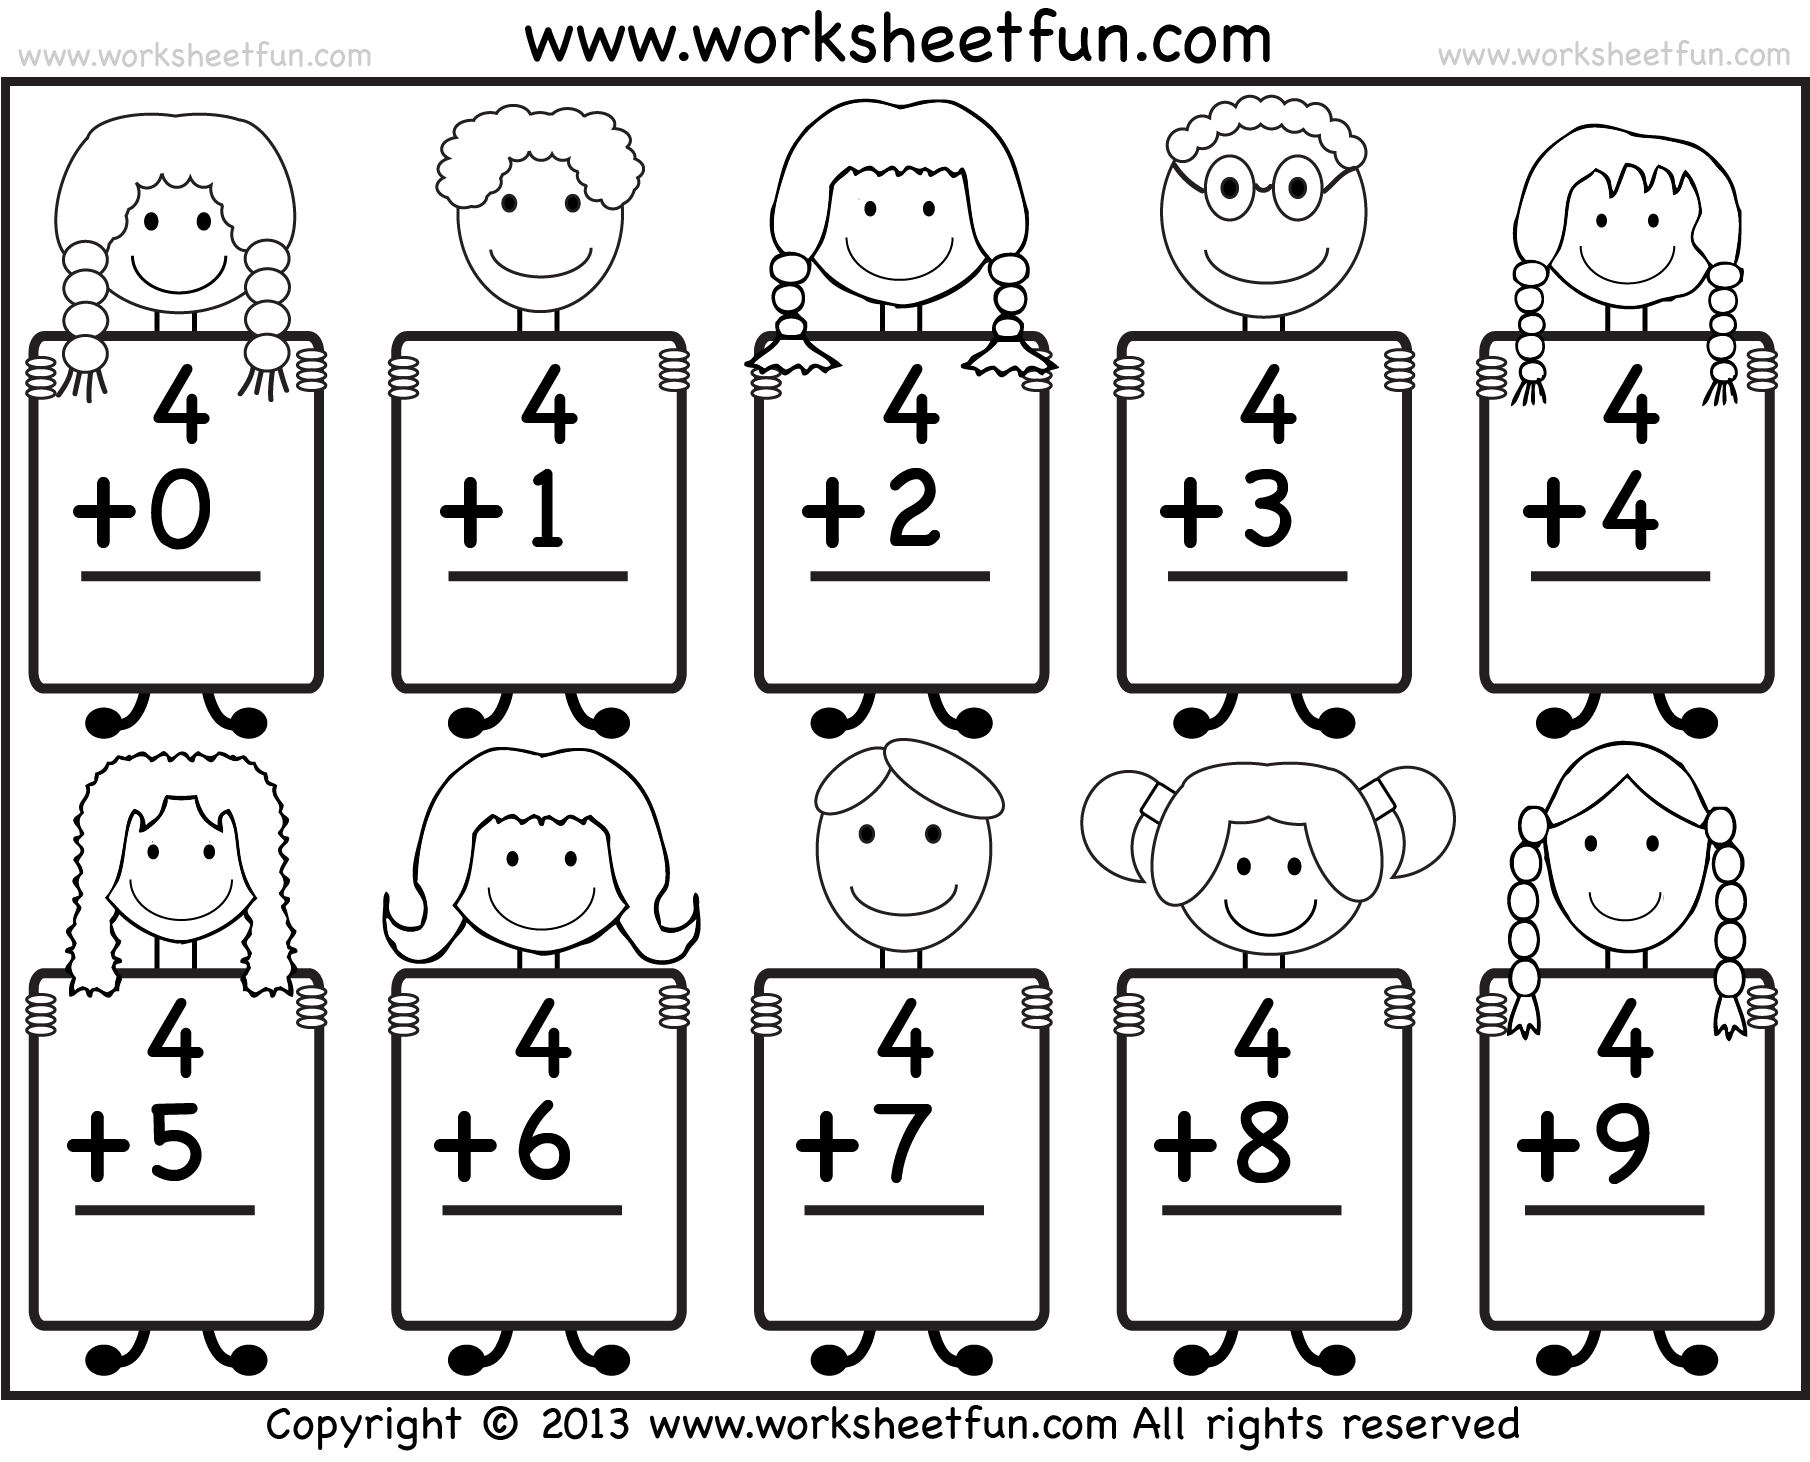 Worksheet Kindergarten Addition worksheets addition facts and kindergarten on pinterest